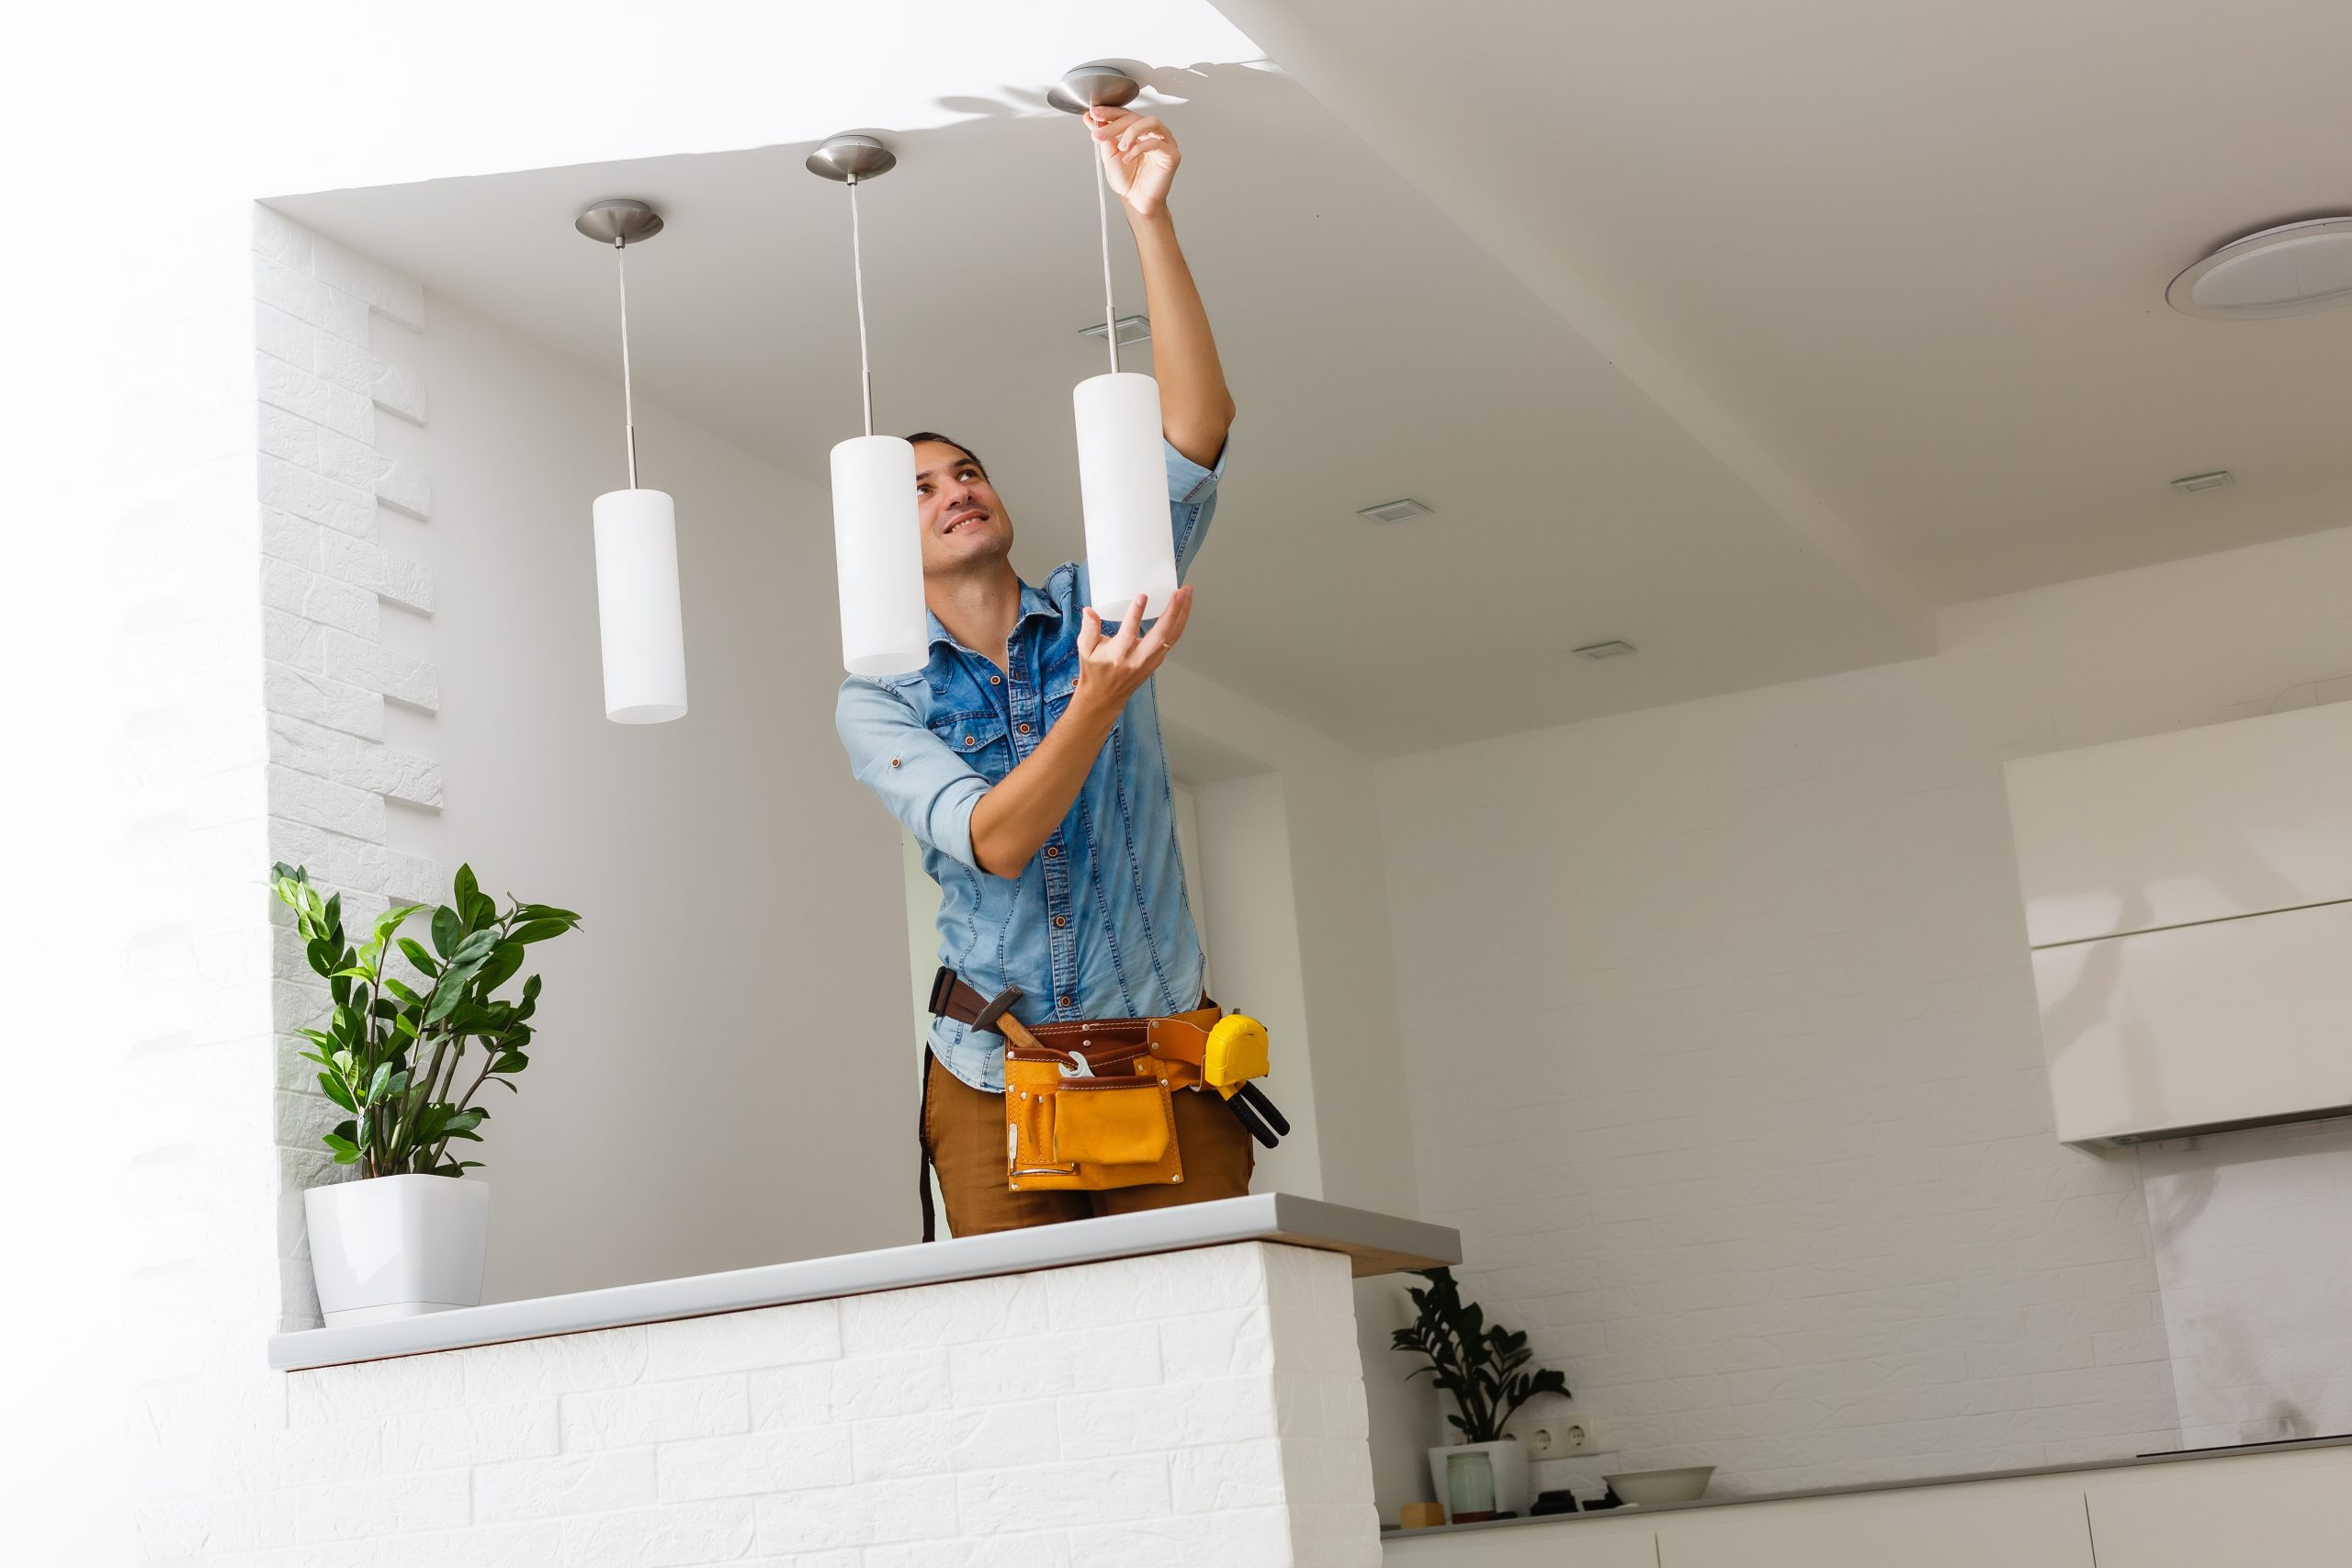 image of worker installing pendant lighting in apartment kitchen